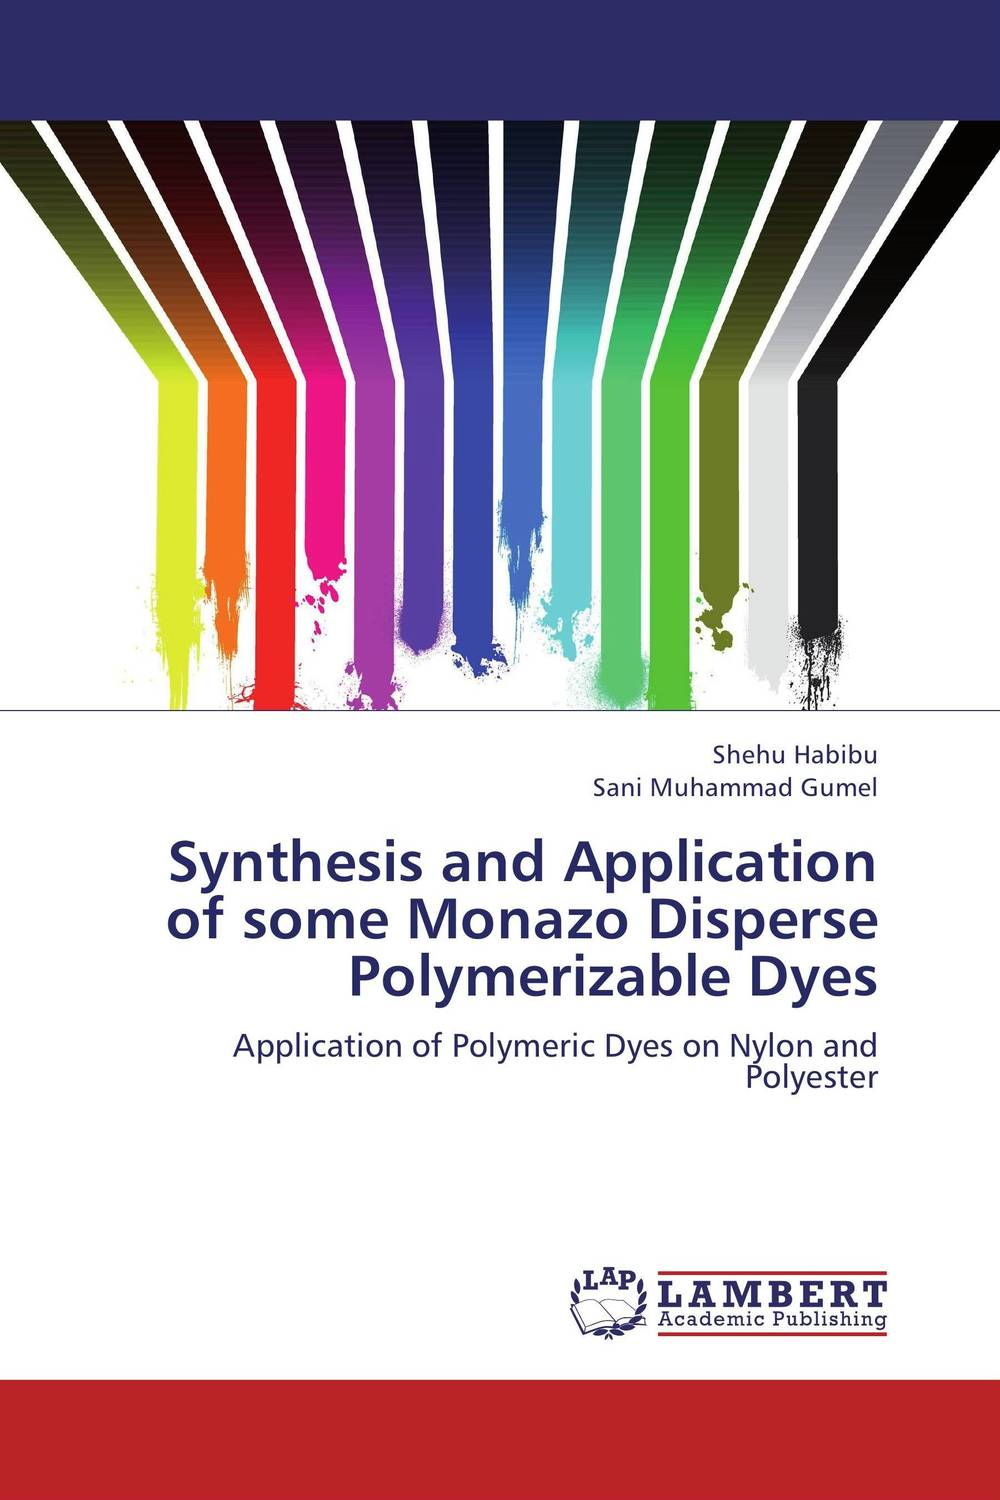 Synthesis and Application of some Monazo Disperse Polymerizable Dyes d rakesh s s kalyan kamal and sumair faisal ahmed synthesis